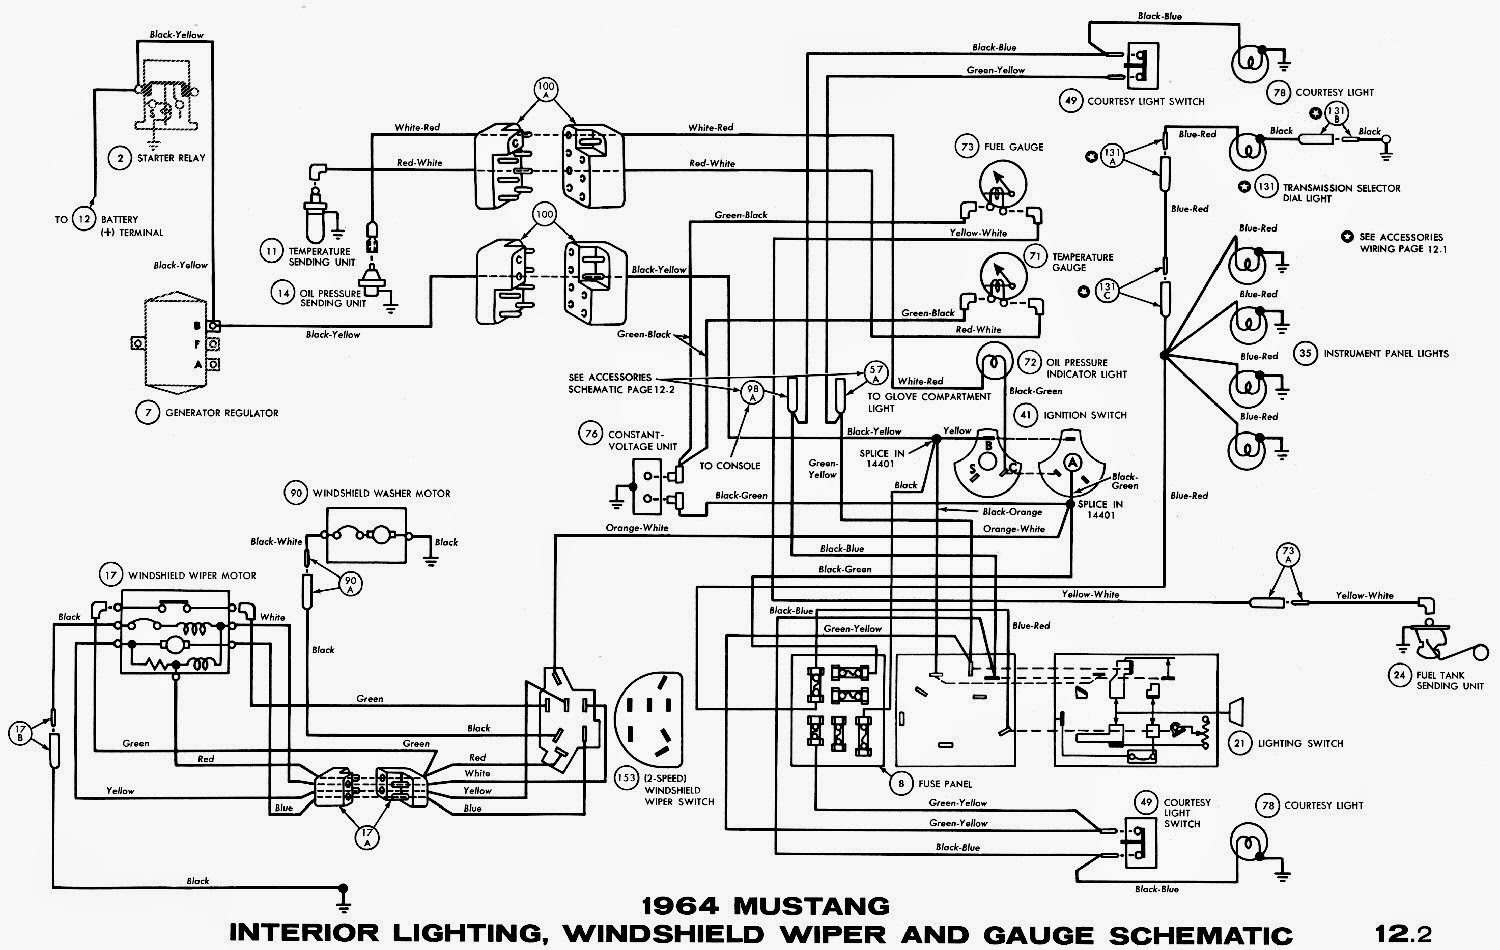 hight resolution of 1964 buick lesabre wiring diagram wiring diagram buick rendezvous fuse box diagram 1998 buick century fuse